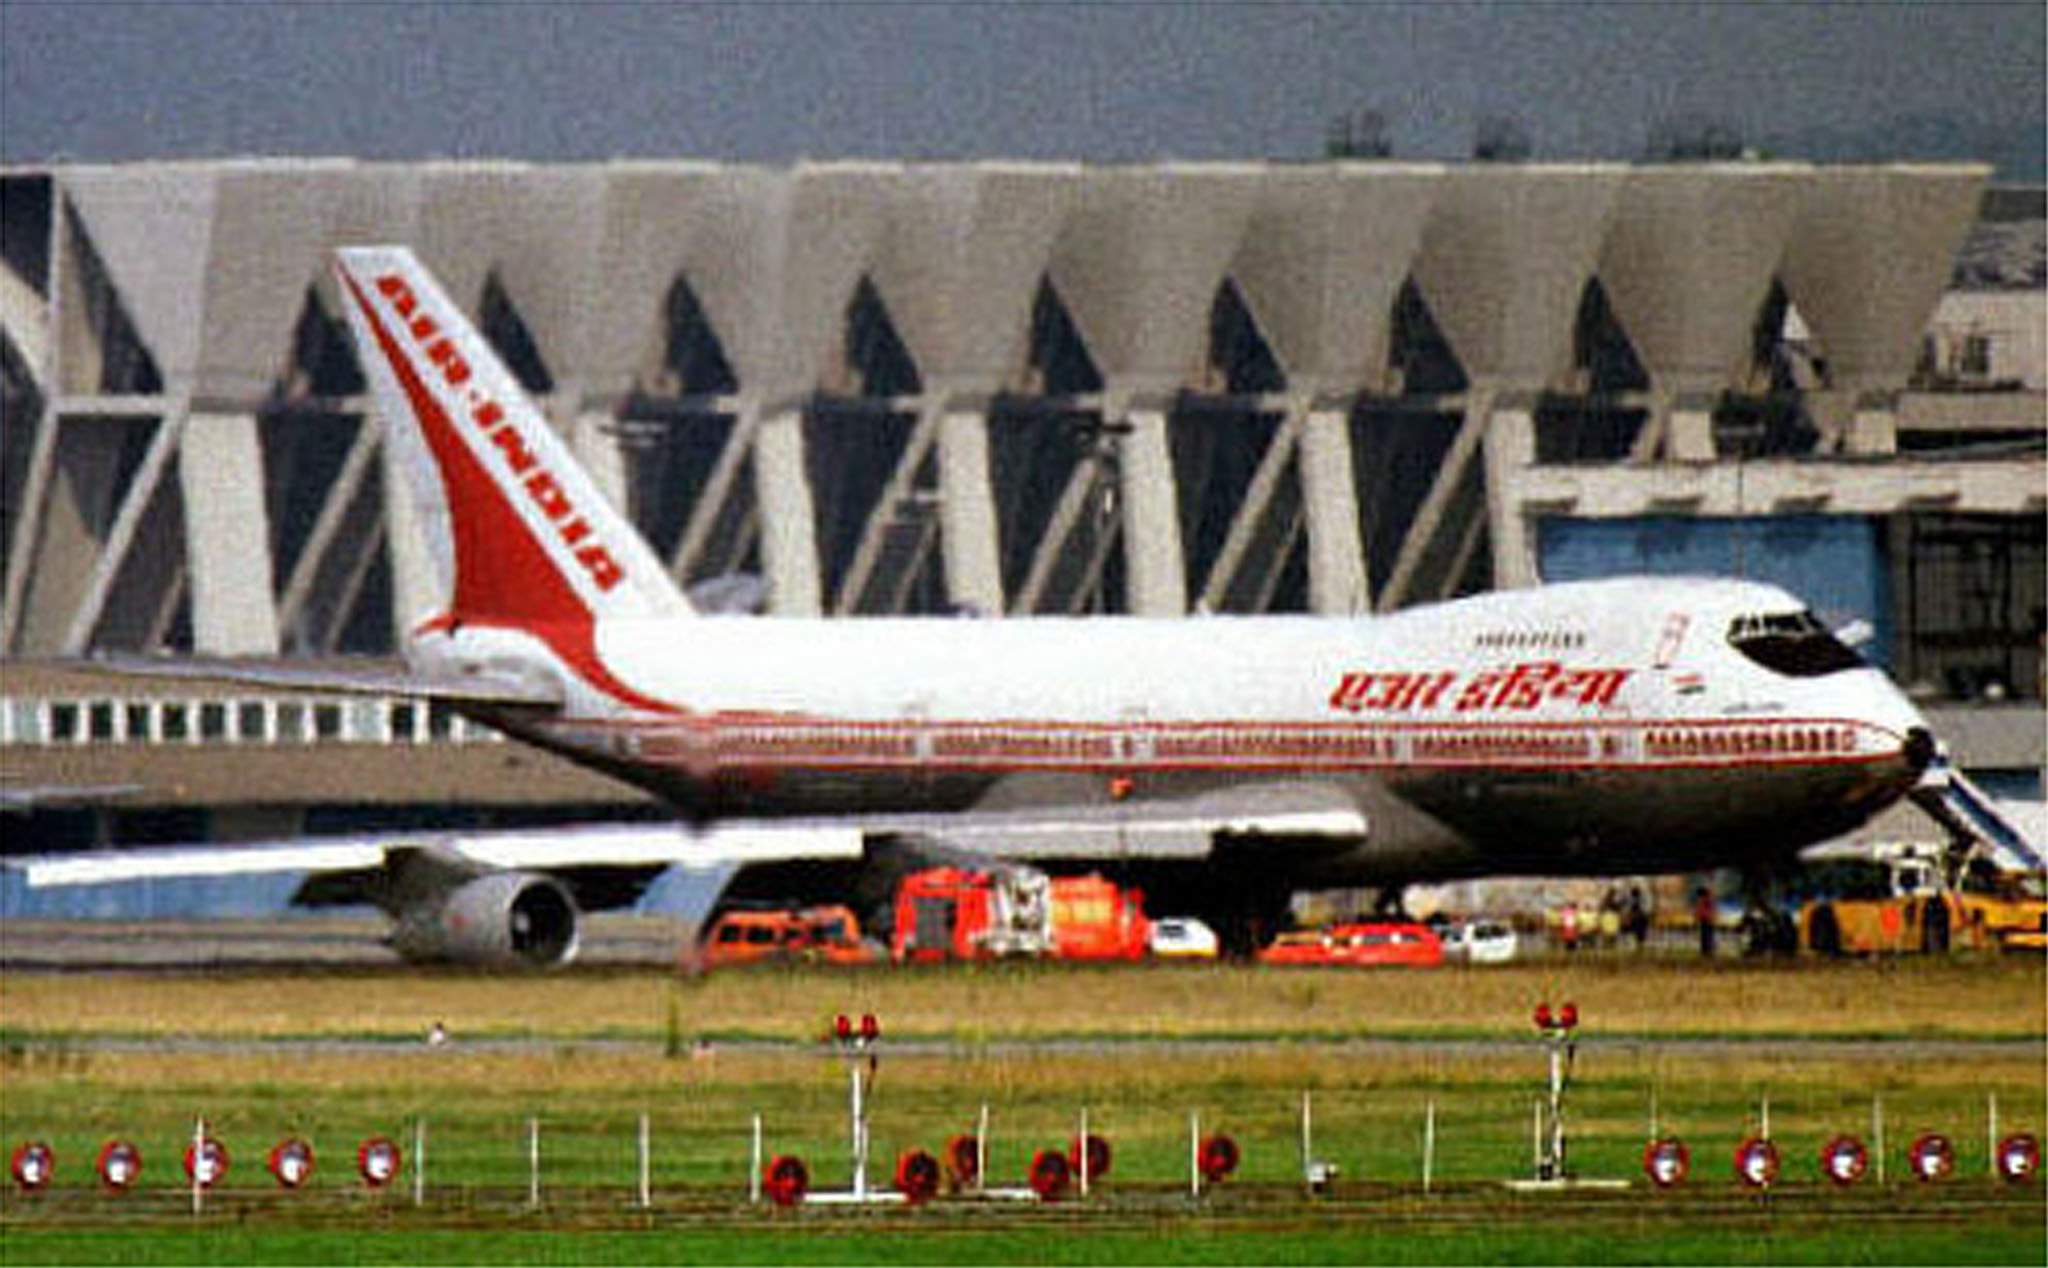 Over 134 passengers and the crew of an Air India plane from Delhi had a miraculous escape in June 2017 when it suffered a brake failure on landing and skidded beyond the runway before coming to a halt at the end of the strip, reported PTI. (Representational Image: Reuters)